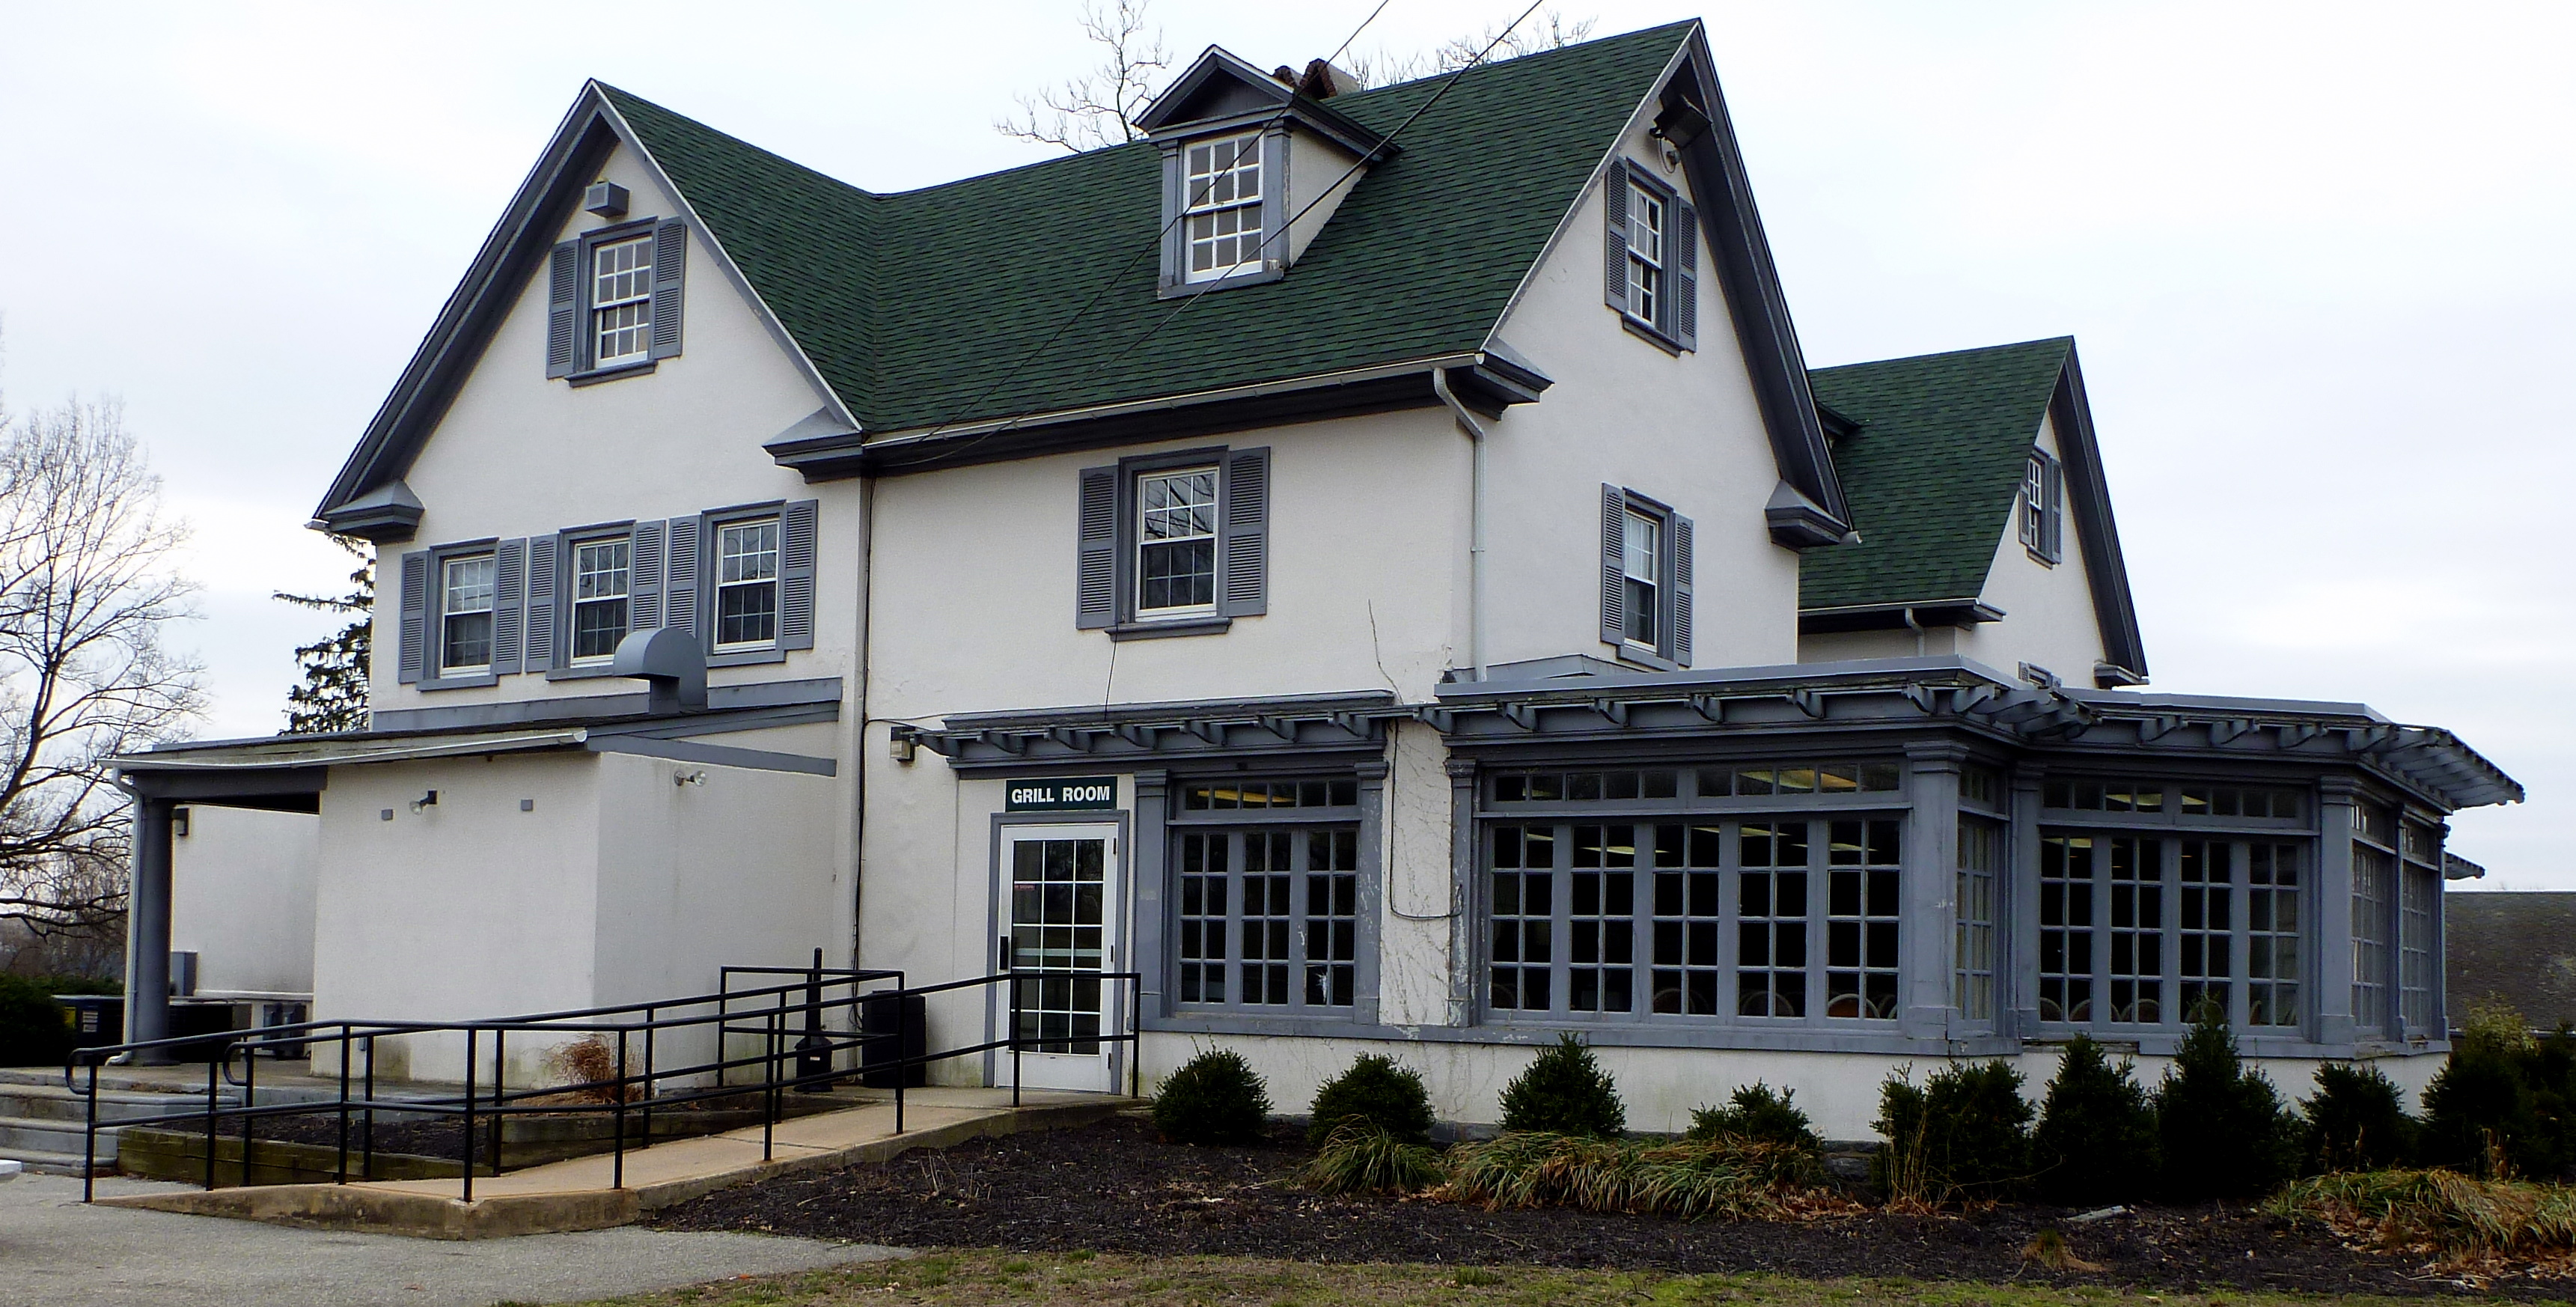 Cobbs Creek clubhouse, March 15, 2013.